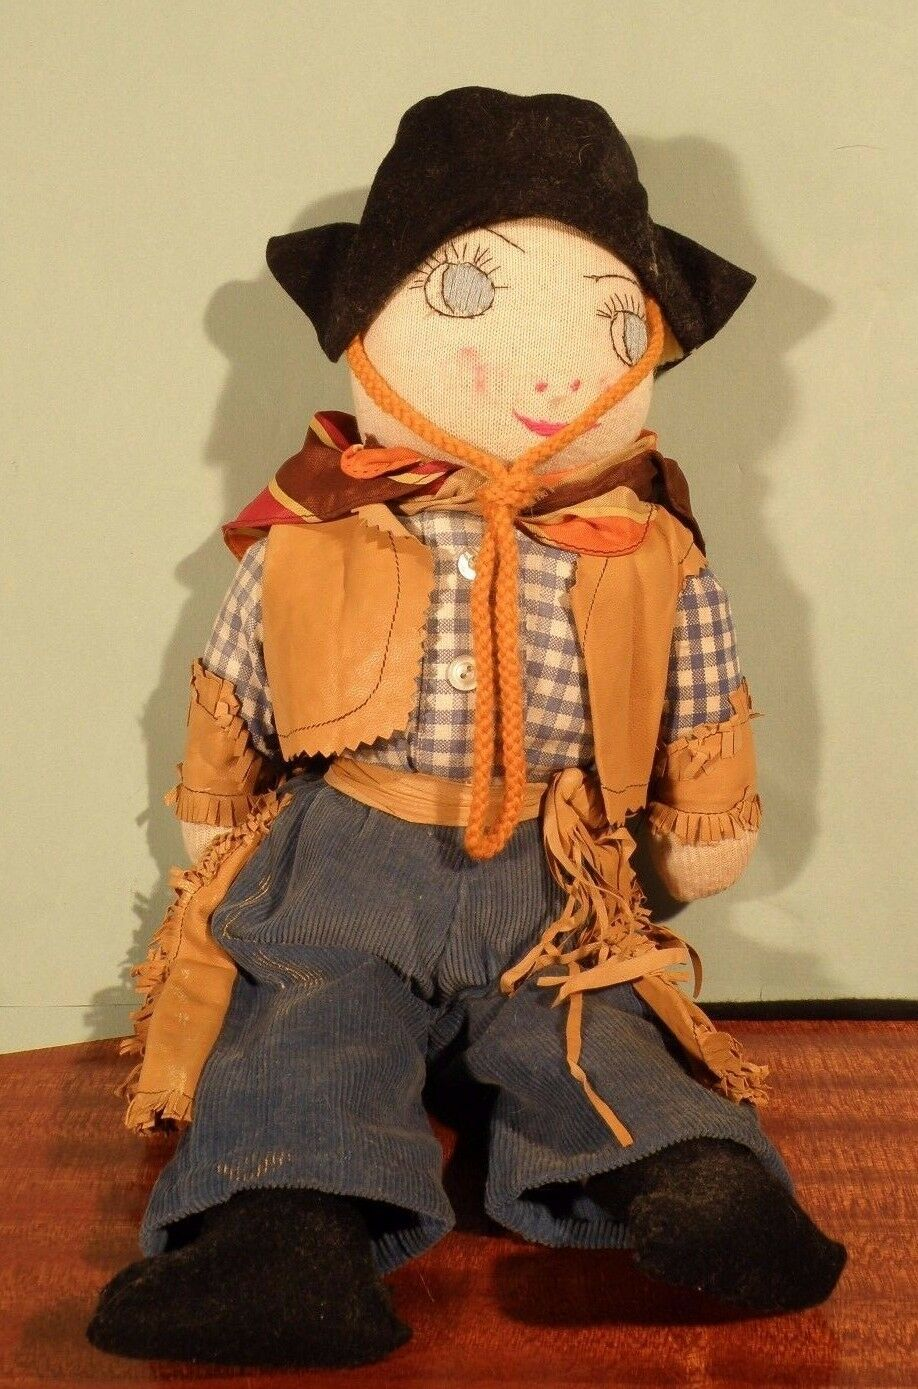 Antique Rag Doll Cowboy Handmade Folk Art Embroidery Primitive Sculpture Naive